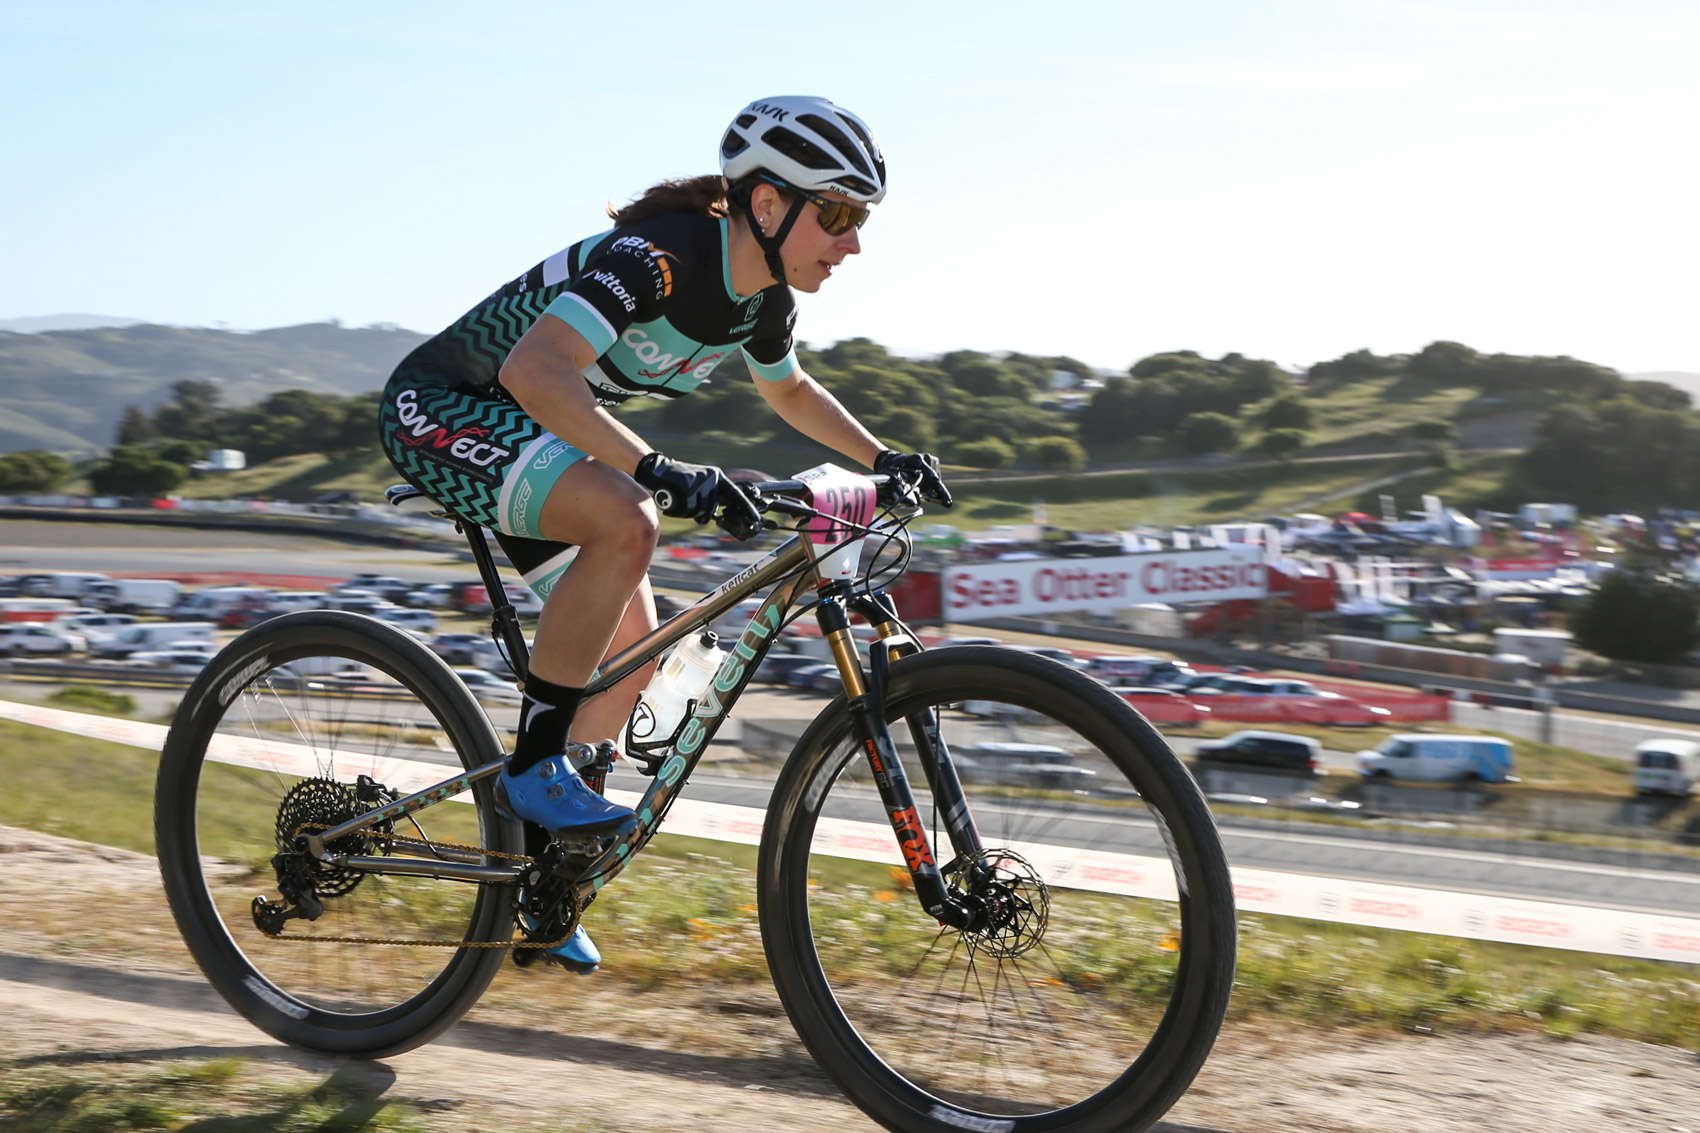 Kelly Catale at Sea Otter